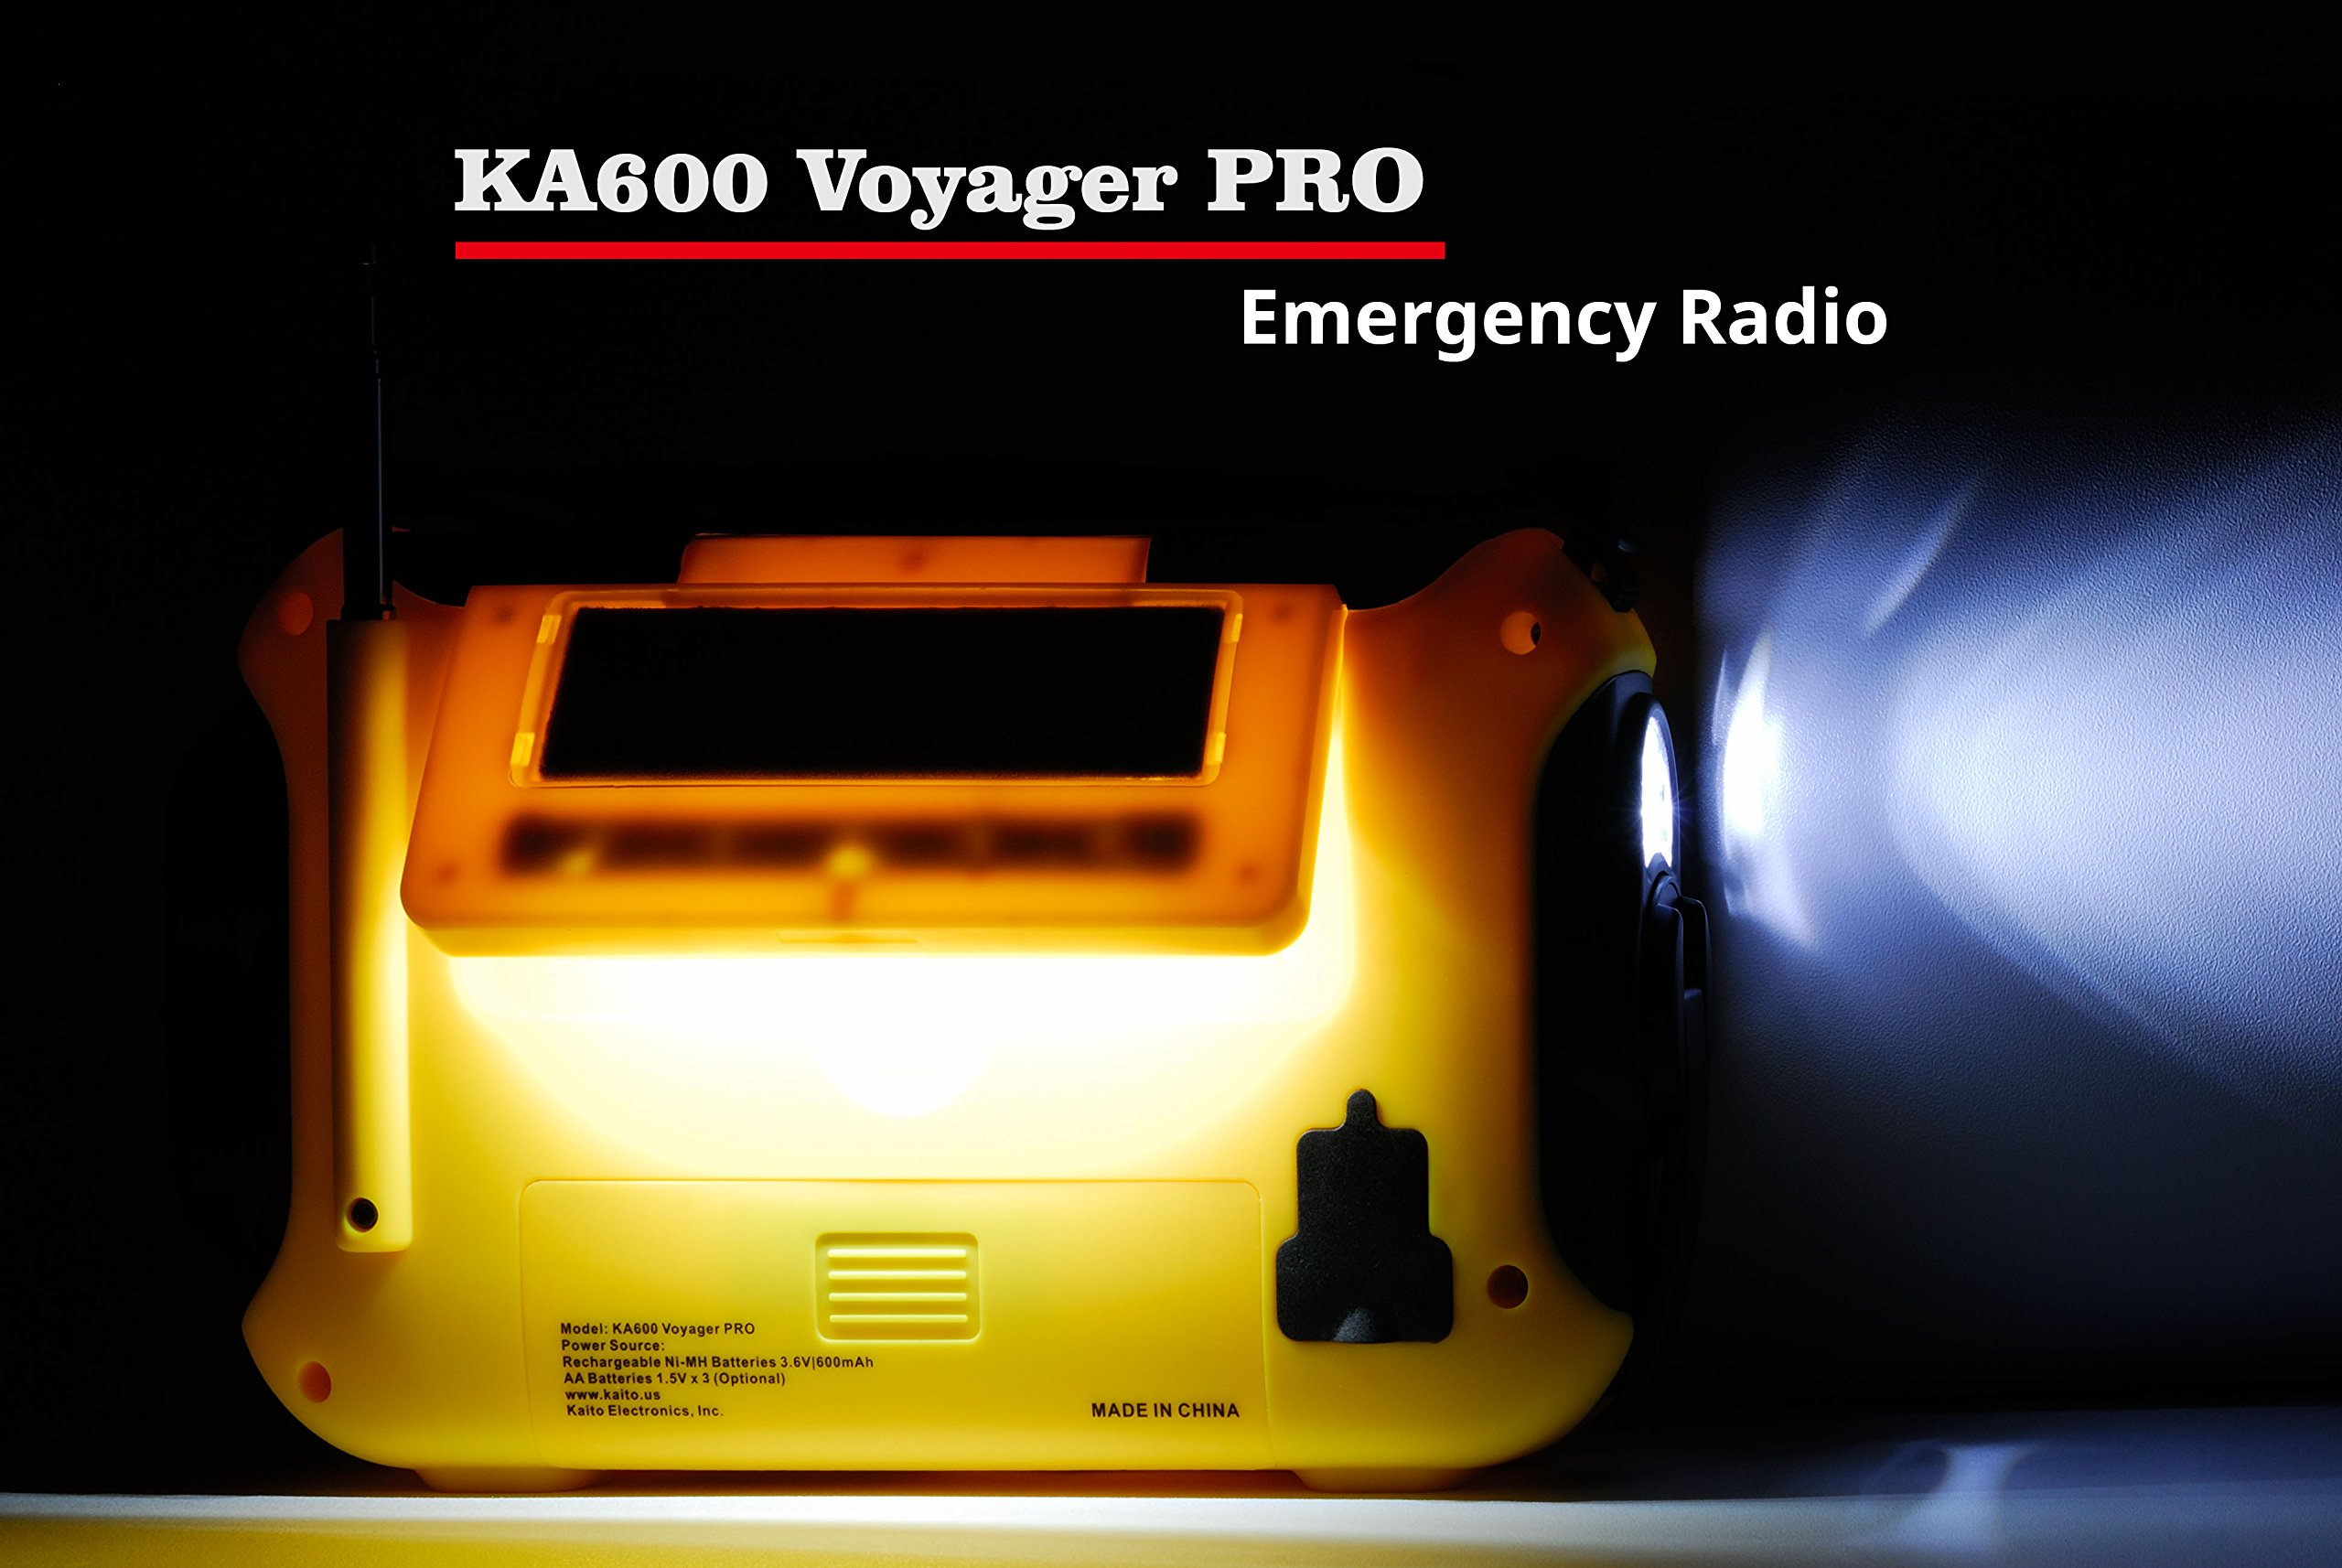 Kaito Voyager Pro KA600 Digital Solar Dynamo Crank Wind Up AM/FM/LW/SW & NOAA Weather Emergency Radio with Alert, RDS & Smart Phone Charger, Yellow (AC Wall Adapter Included) by Kaito (Image #6)